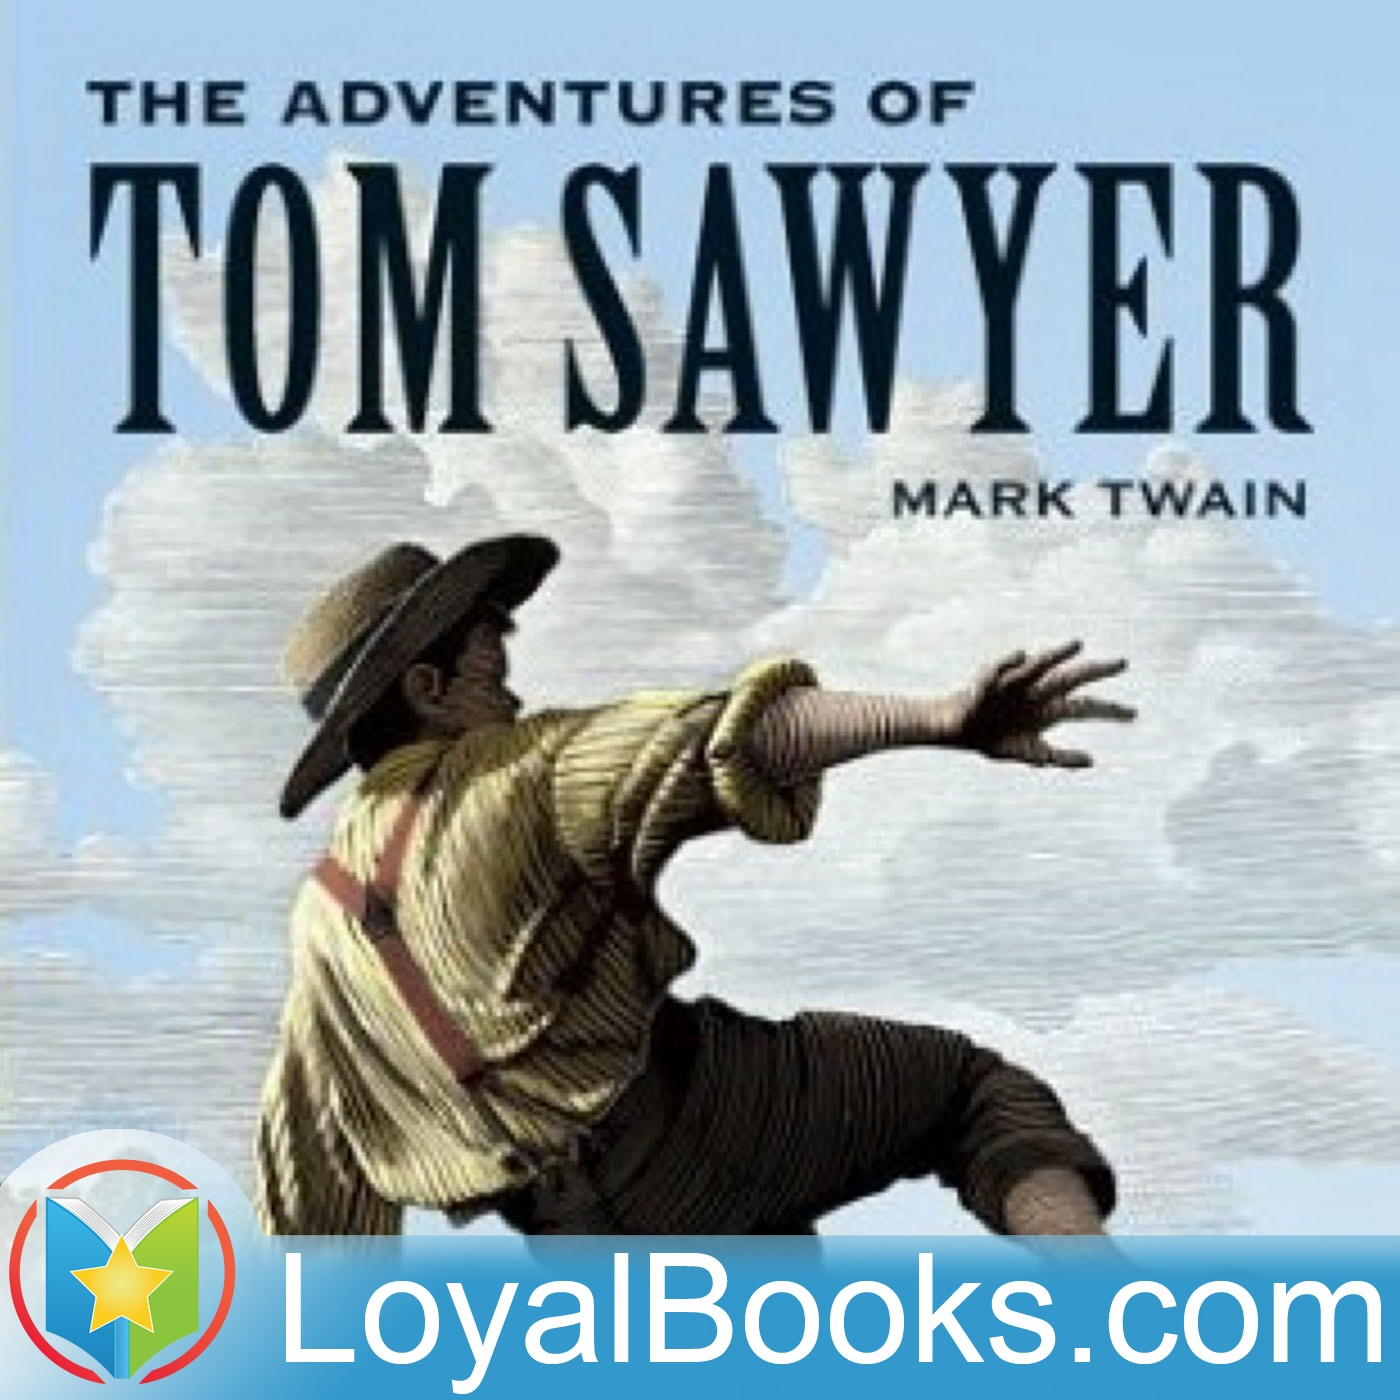 a review of mark twains the adventures of tom sawyer The adventures of tom sawyer is a novel by mark twain, originally published in 1876 in this review, i will not attempt to analyze it from any pretentious literary perspective, but rather as just another novel.